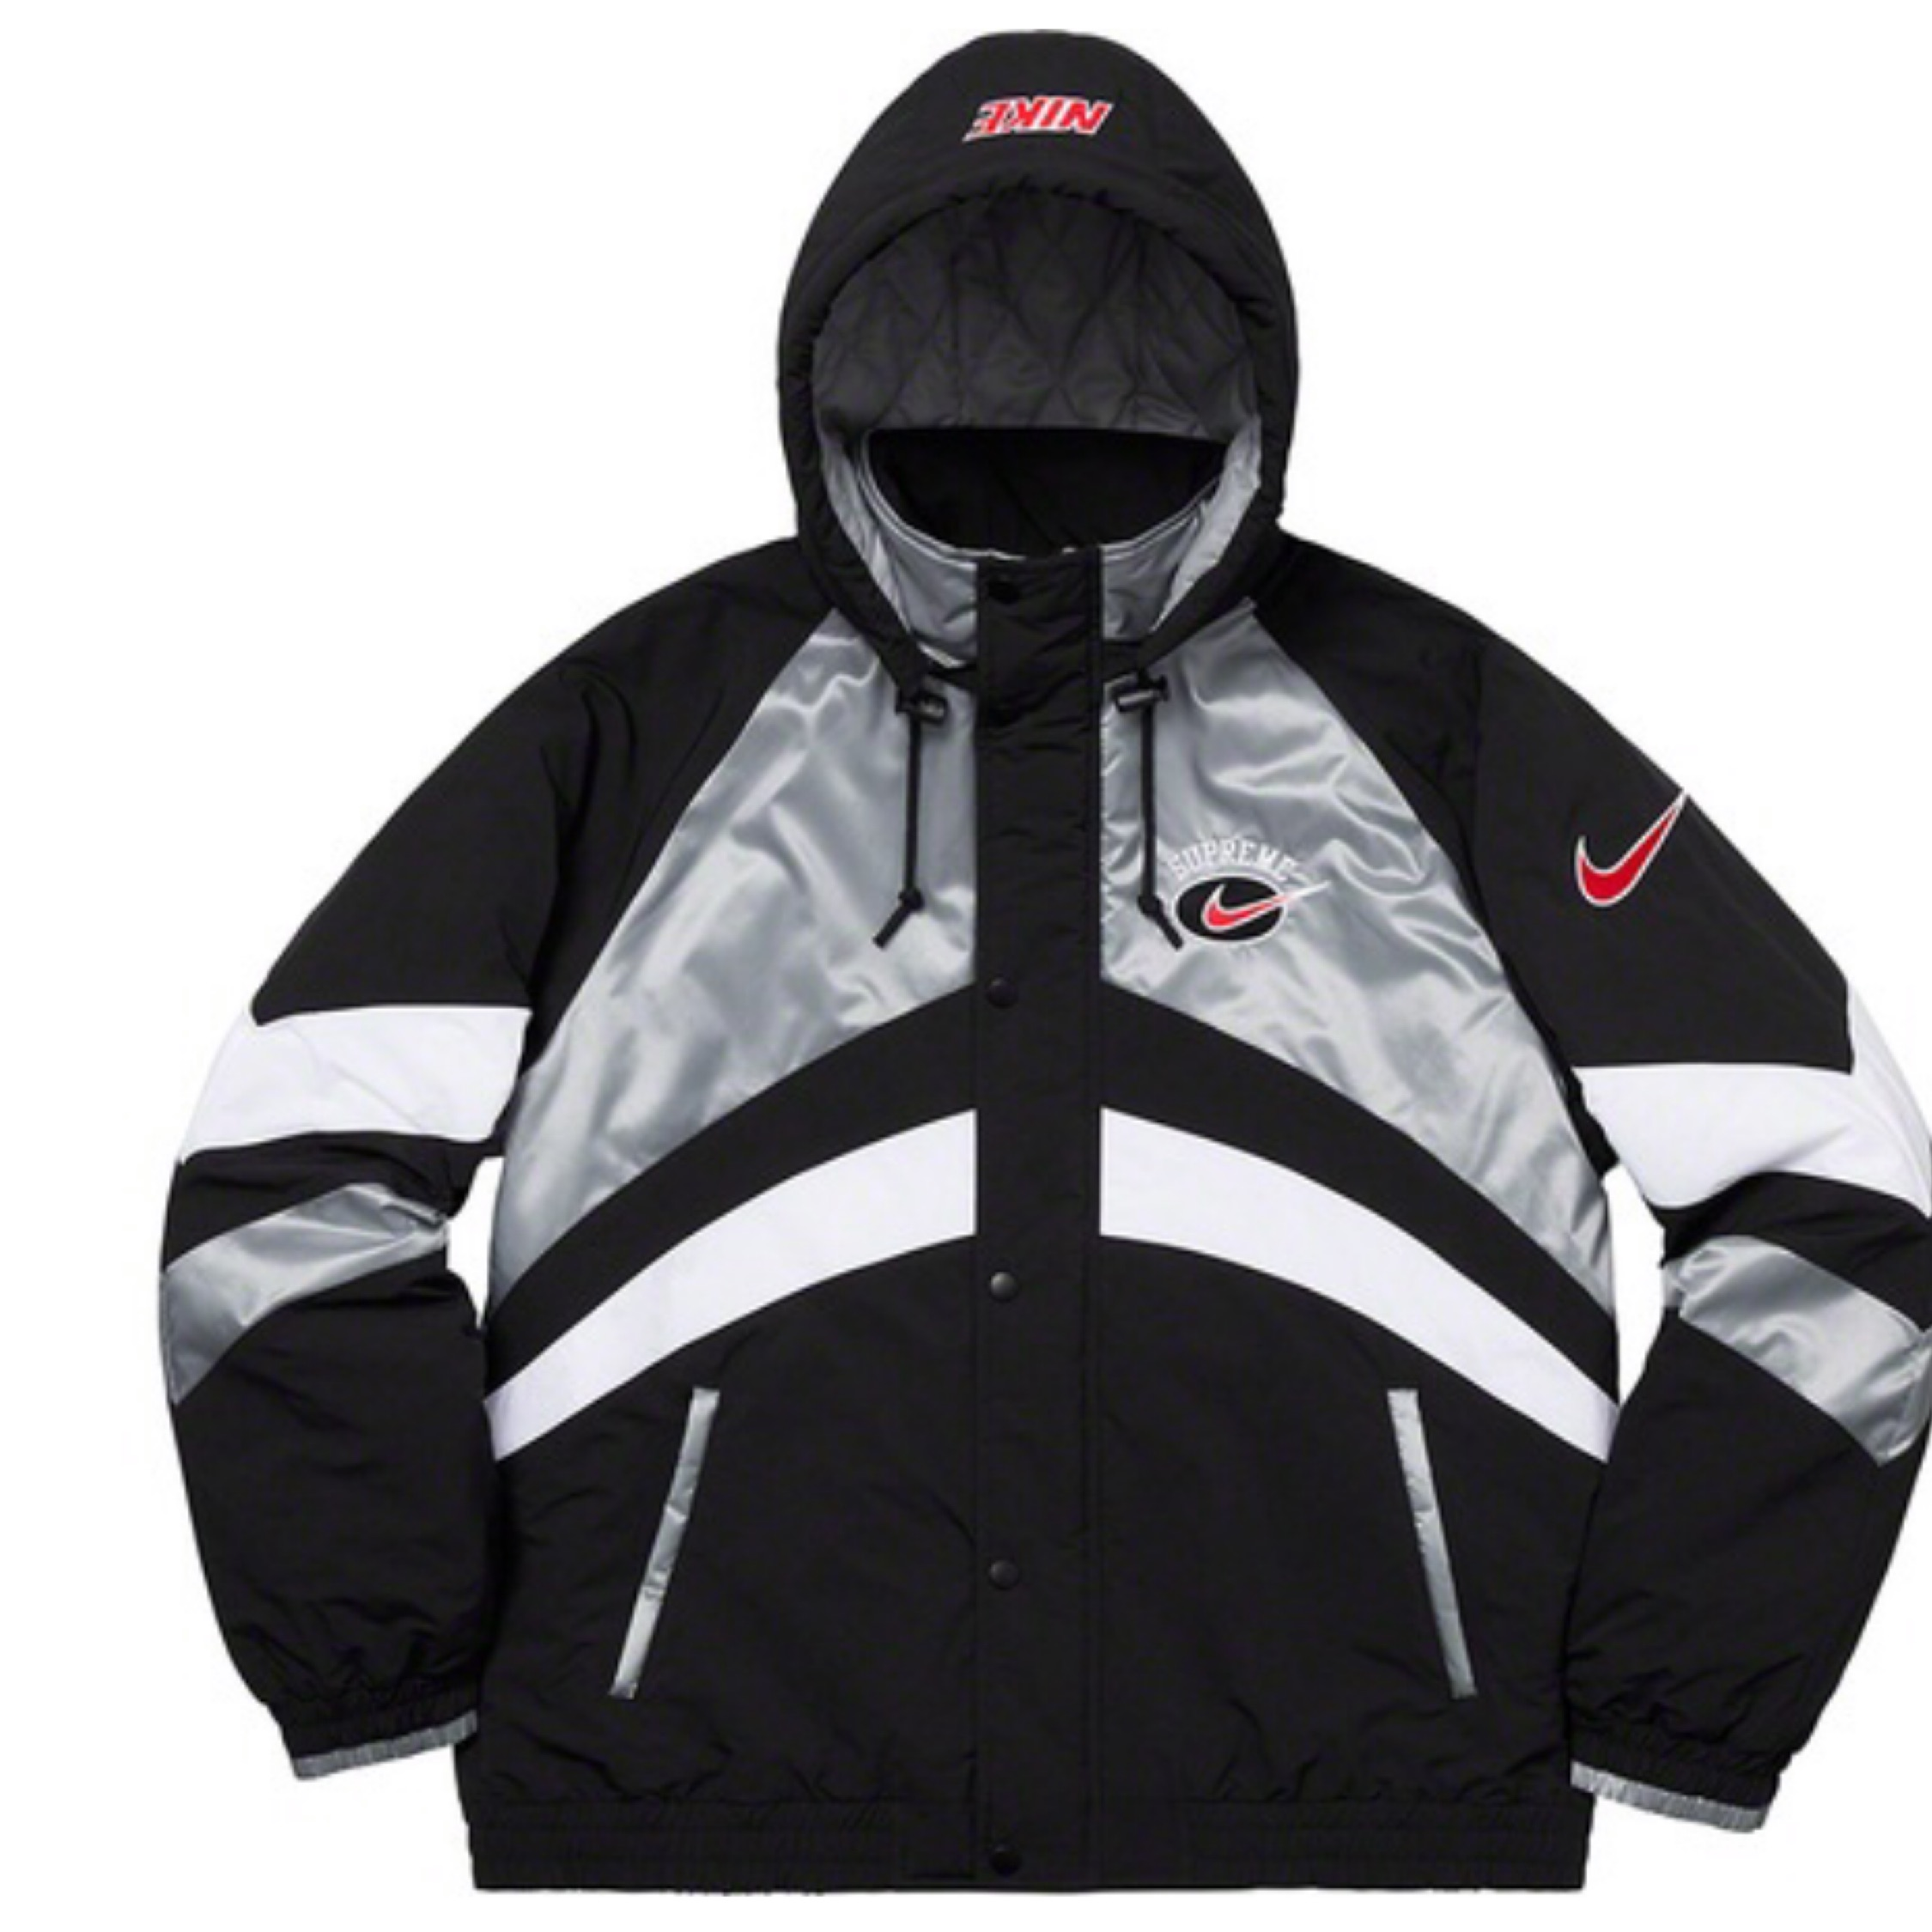 Ss19 Supreme X Nike Hooded Sport Jacket